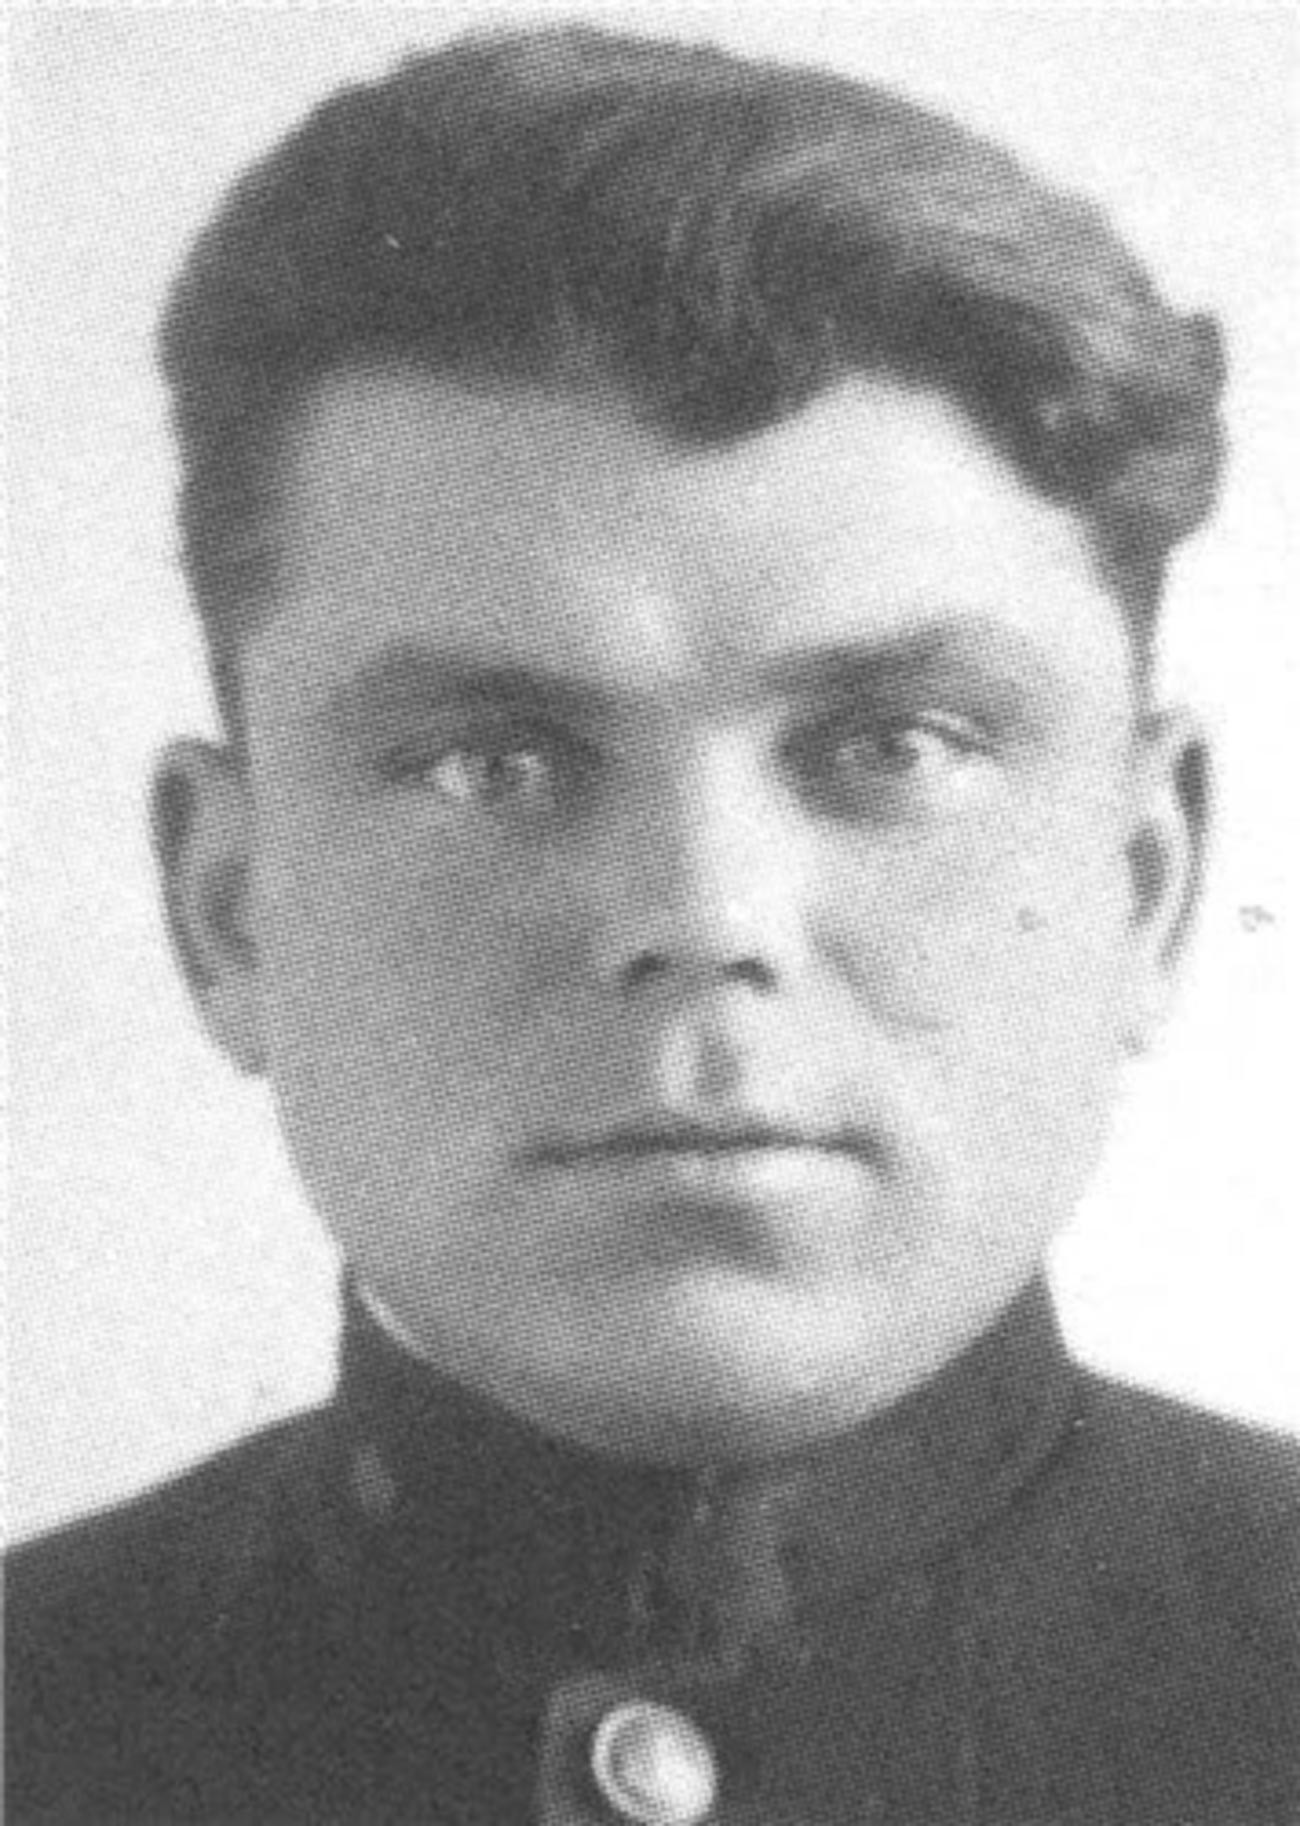 Pavel Botcharov